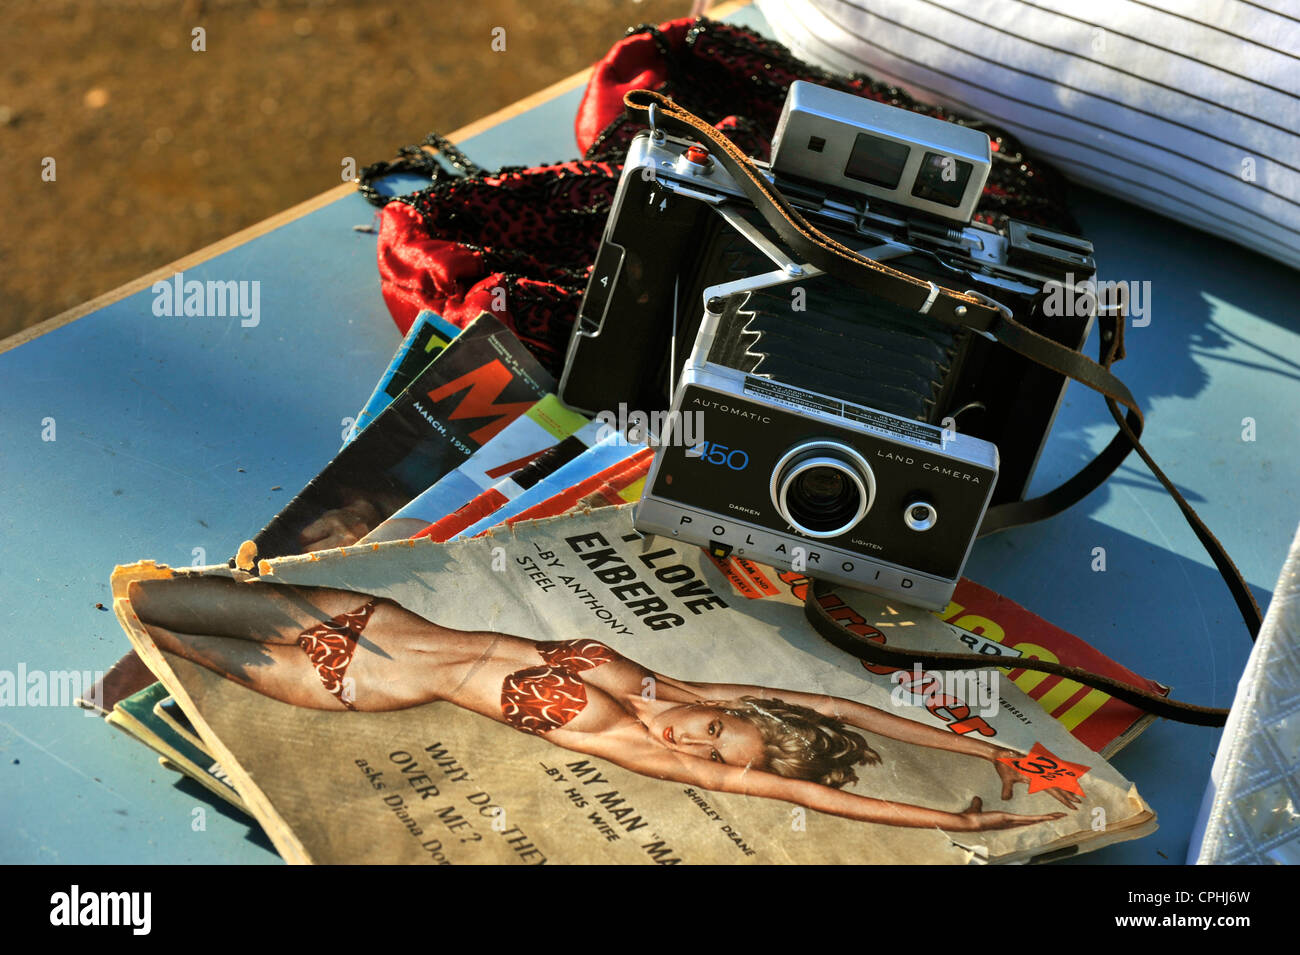 Old Memories for sale at a Garage Sale - Stock Image